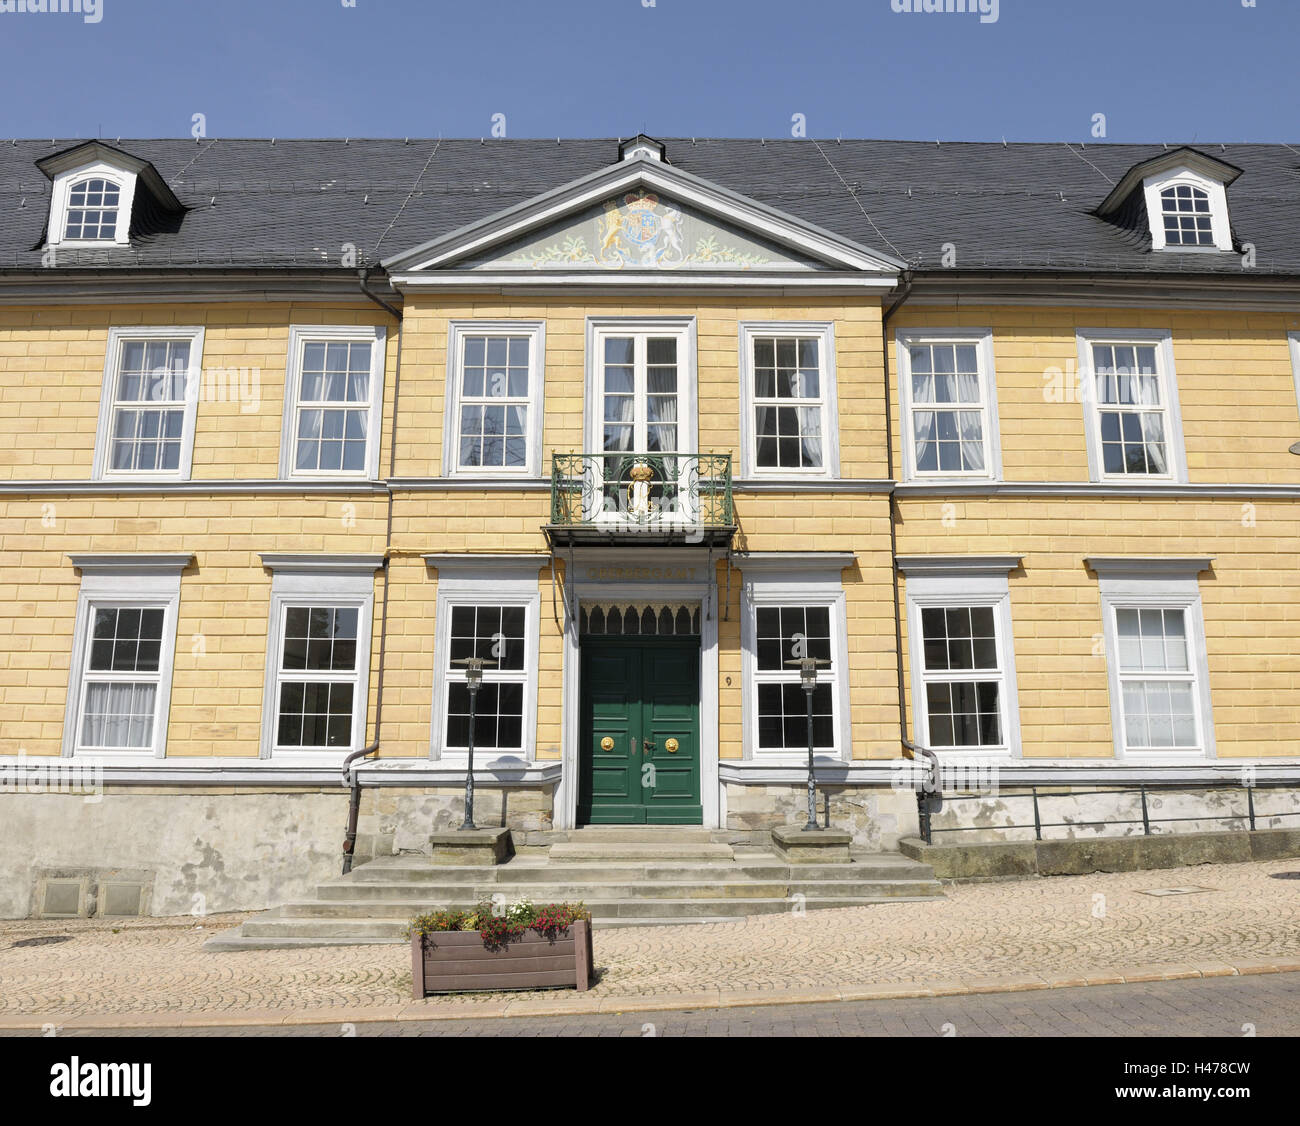 Claus's thaler office house, Clausthal-hermit monk's field, Harz, Lower Saxony, Germany, - Stock Image